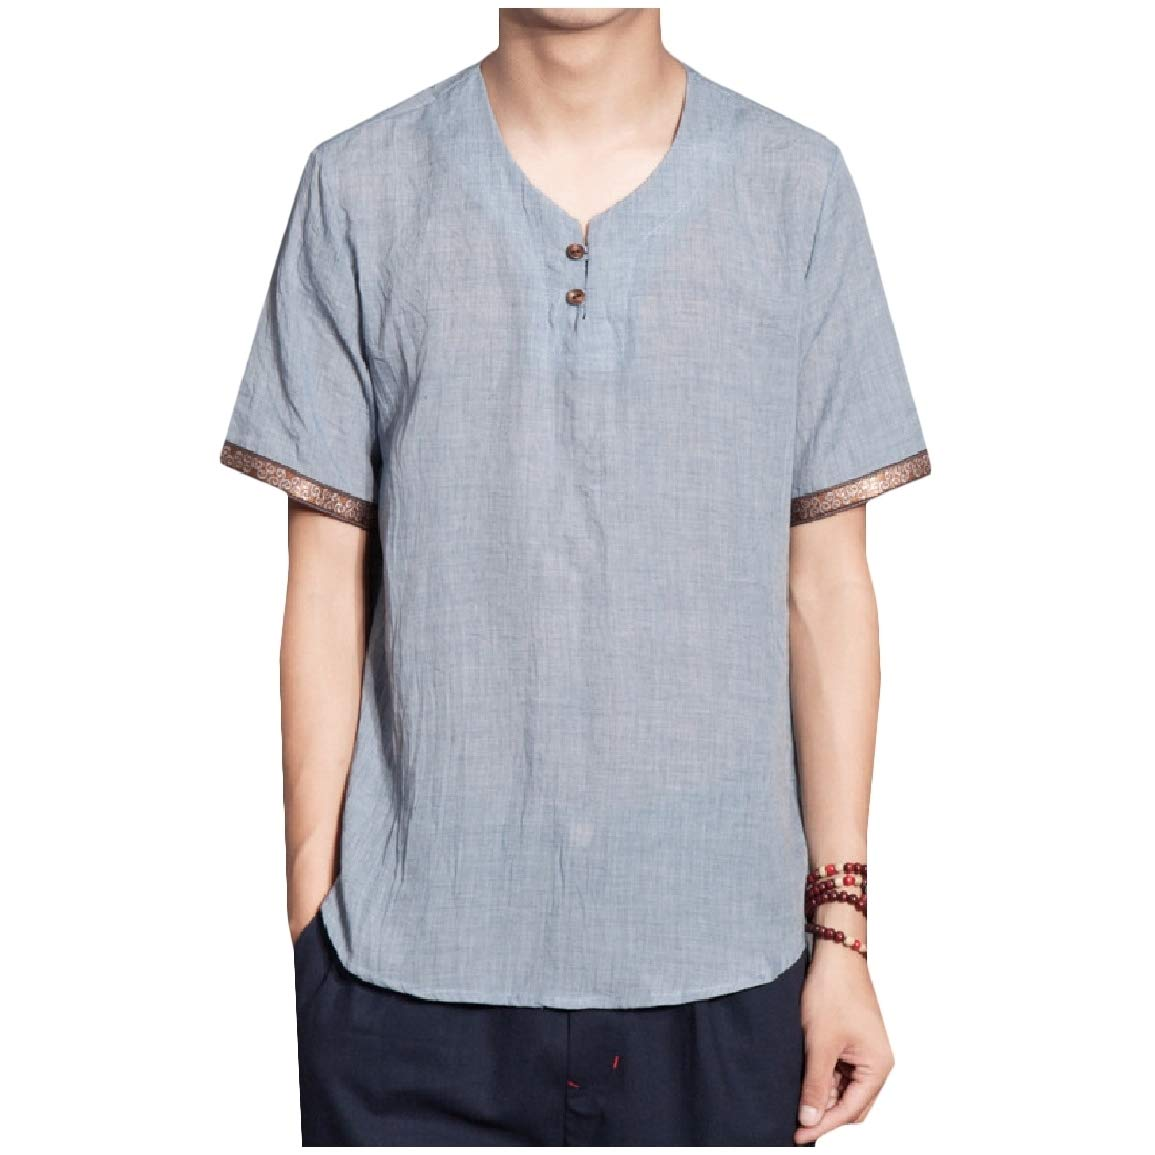 Nicelly Men Chinese Style Short-Sleeve Baggy Style Retro Style Tops Shirt